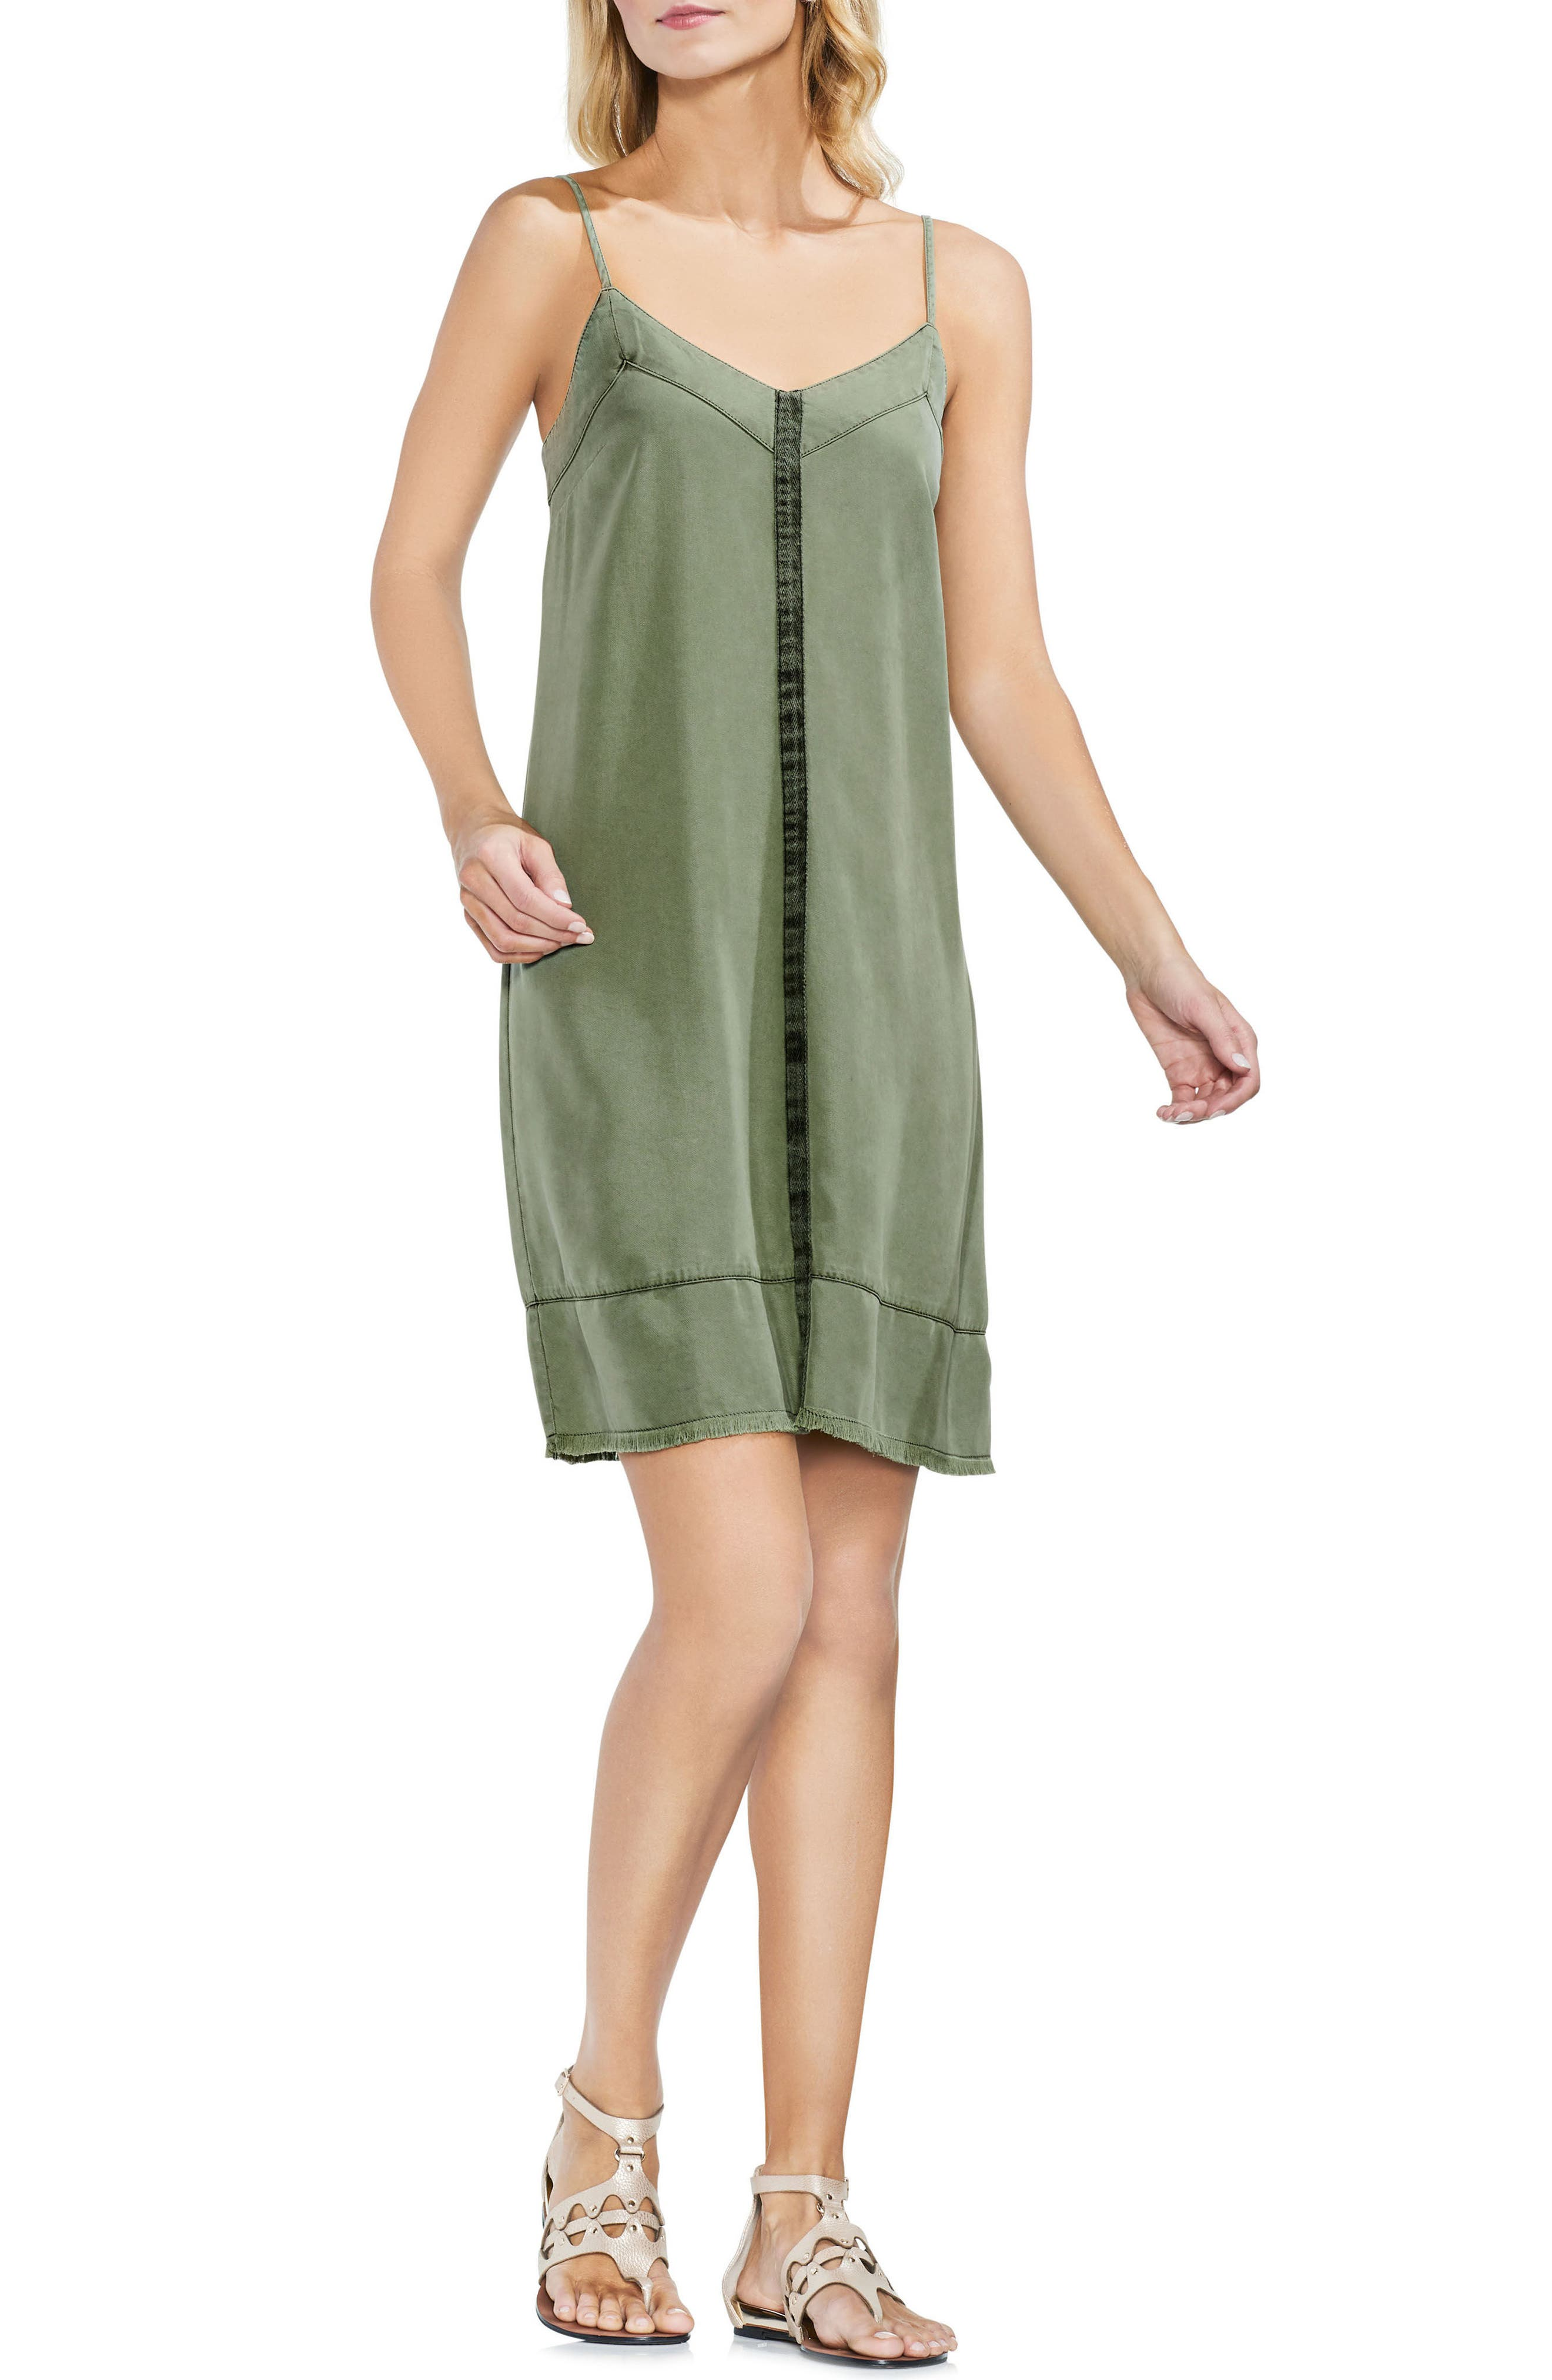 Center Seam Slip Dress,                             Main thumbnail 1, color,                             Canopy Green